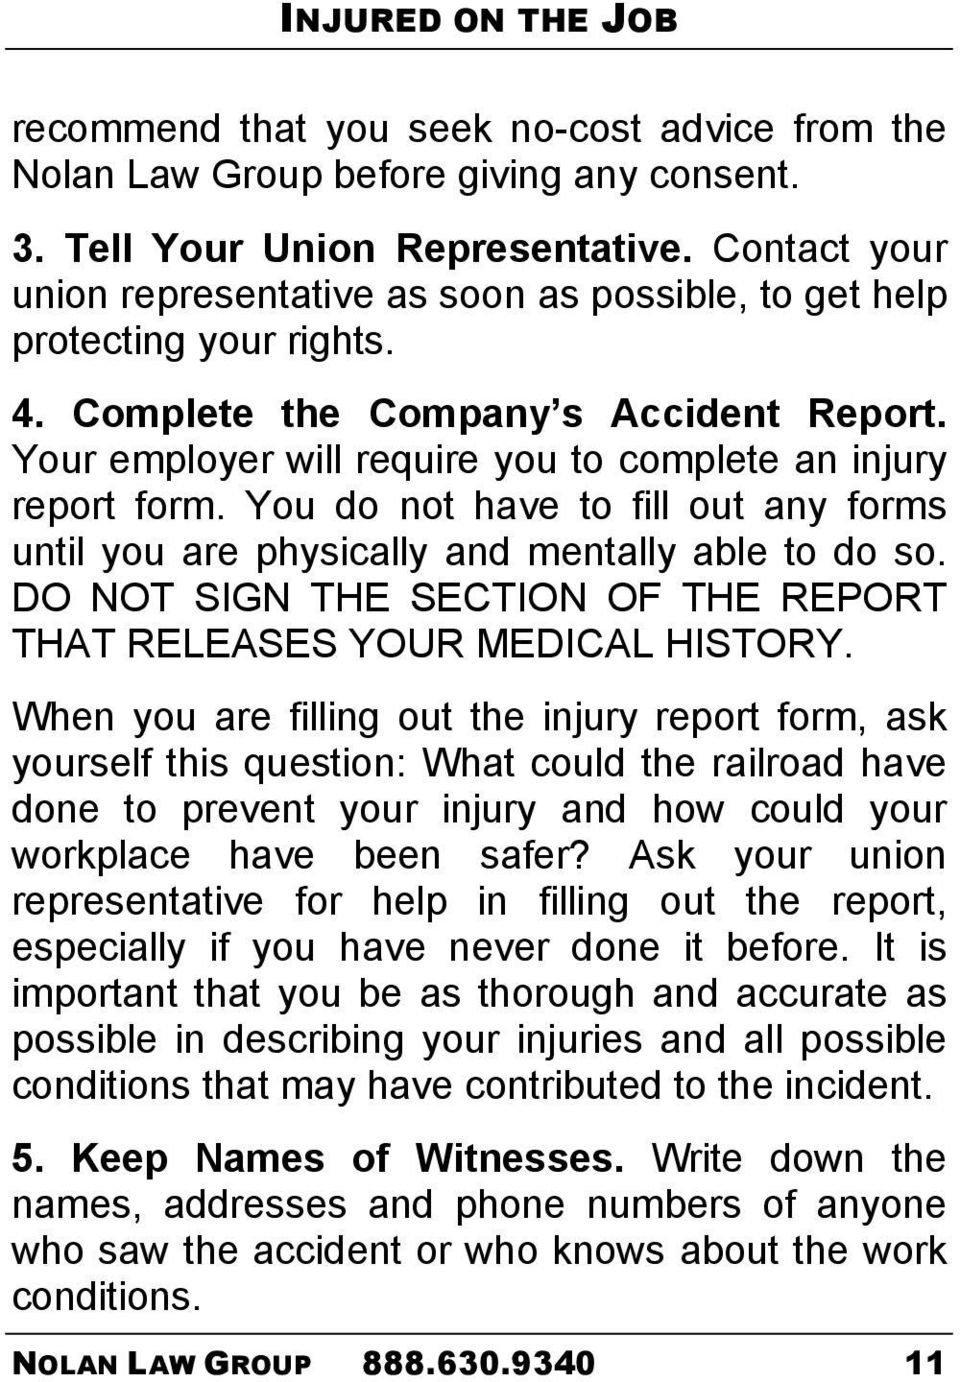 You do not have to fill out any forms until you are physically and mentally able to do so. DO NOT SIGN THE SECTION OF THE REPORT THAT RELEASES YOUR MEDICAL HISTORY.